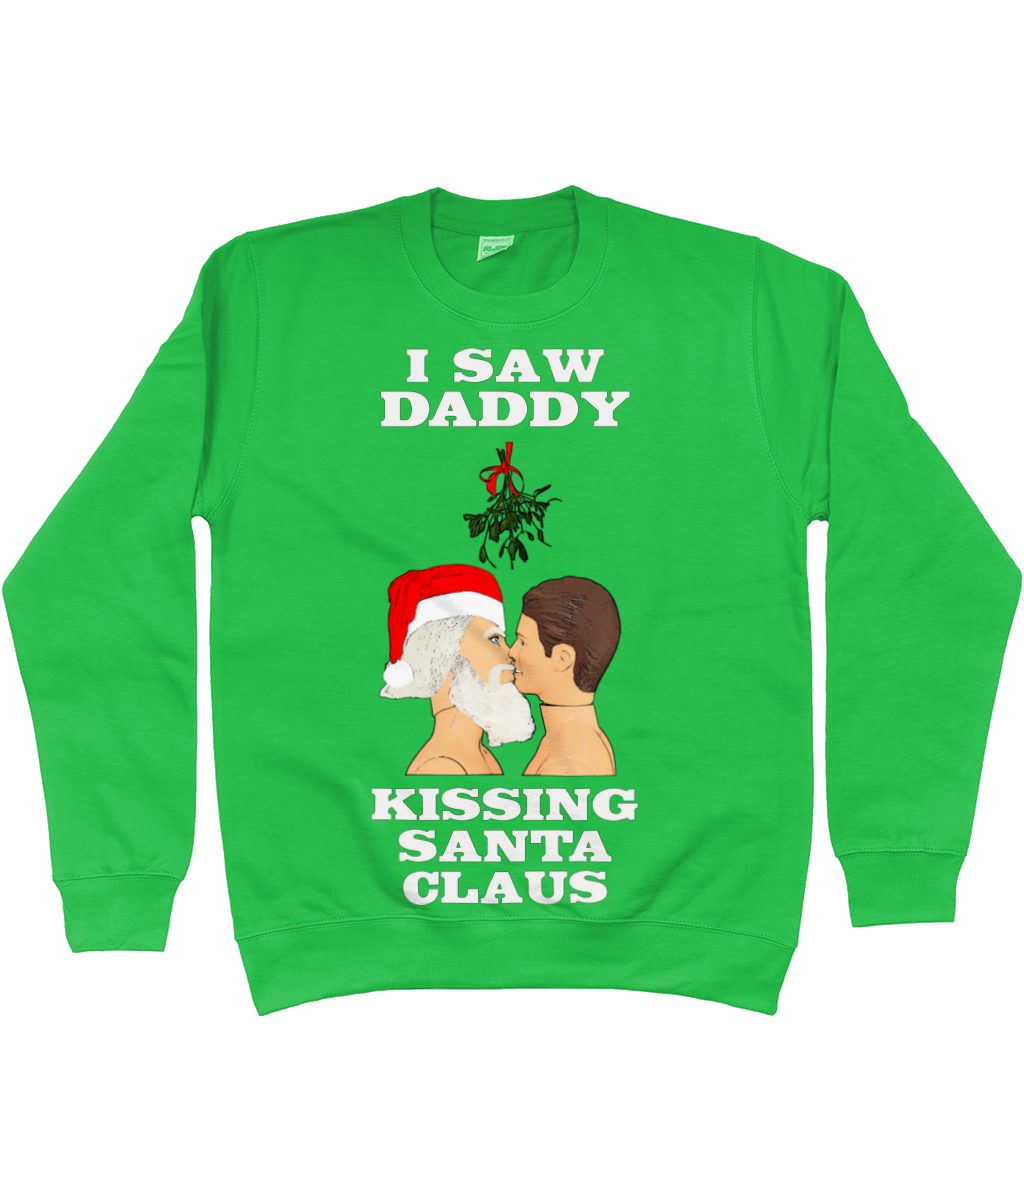 Christmas Jumper Day 2019.Pin On Rude Funny Gay Christmas Jumpers